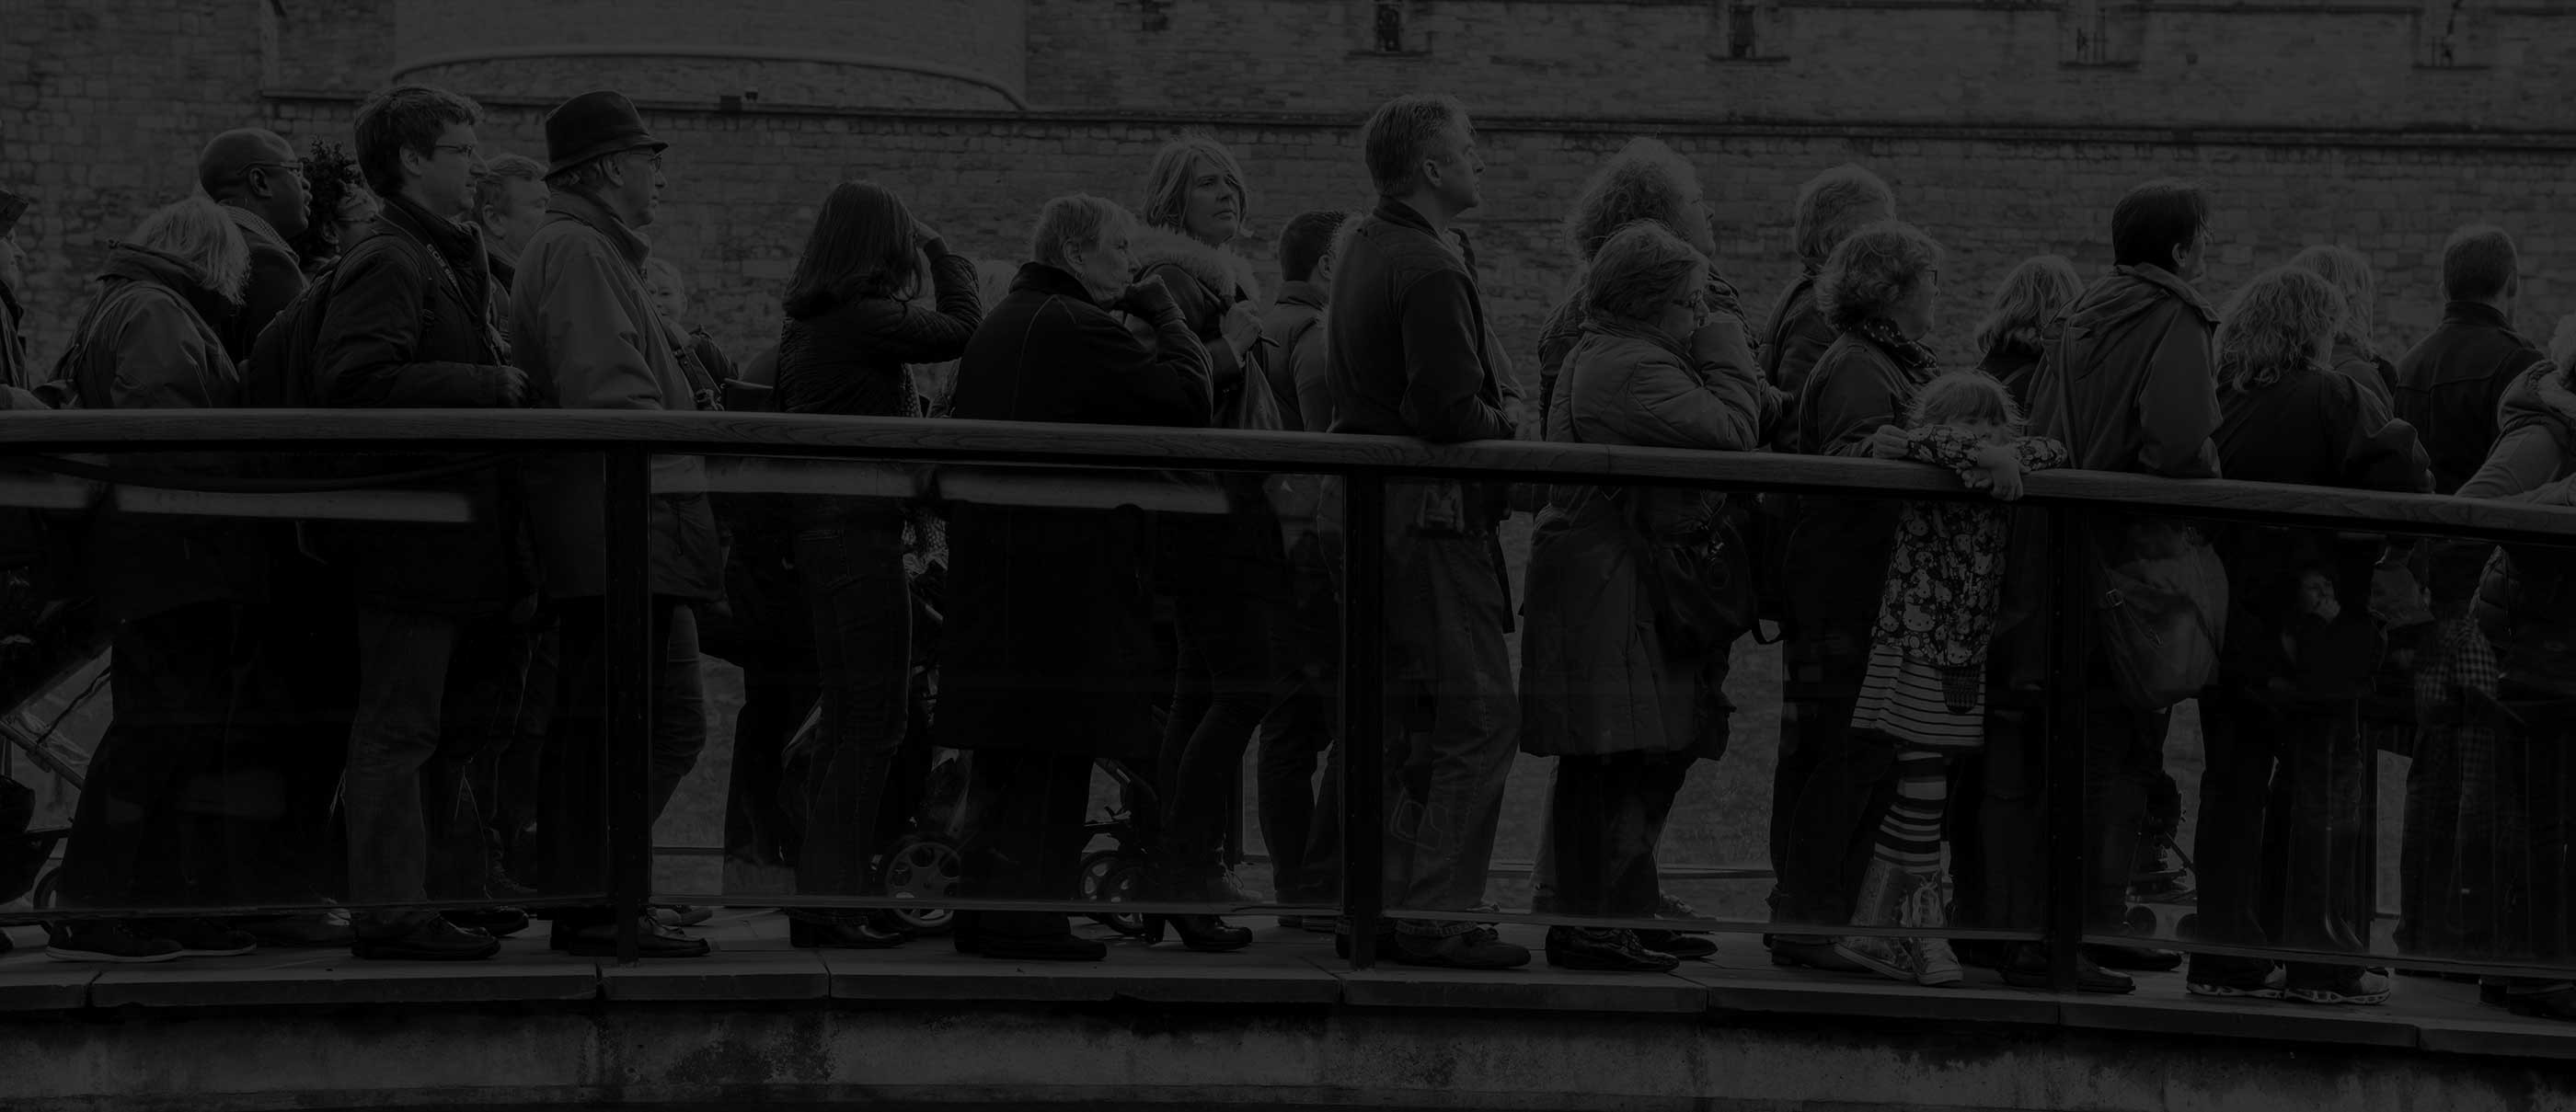 Kaleida: Tired of Queuing? 5 Apps Doing Away with the British Sensibility Banner